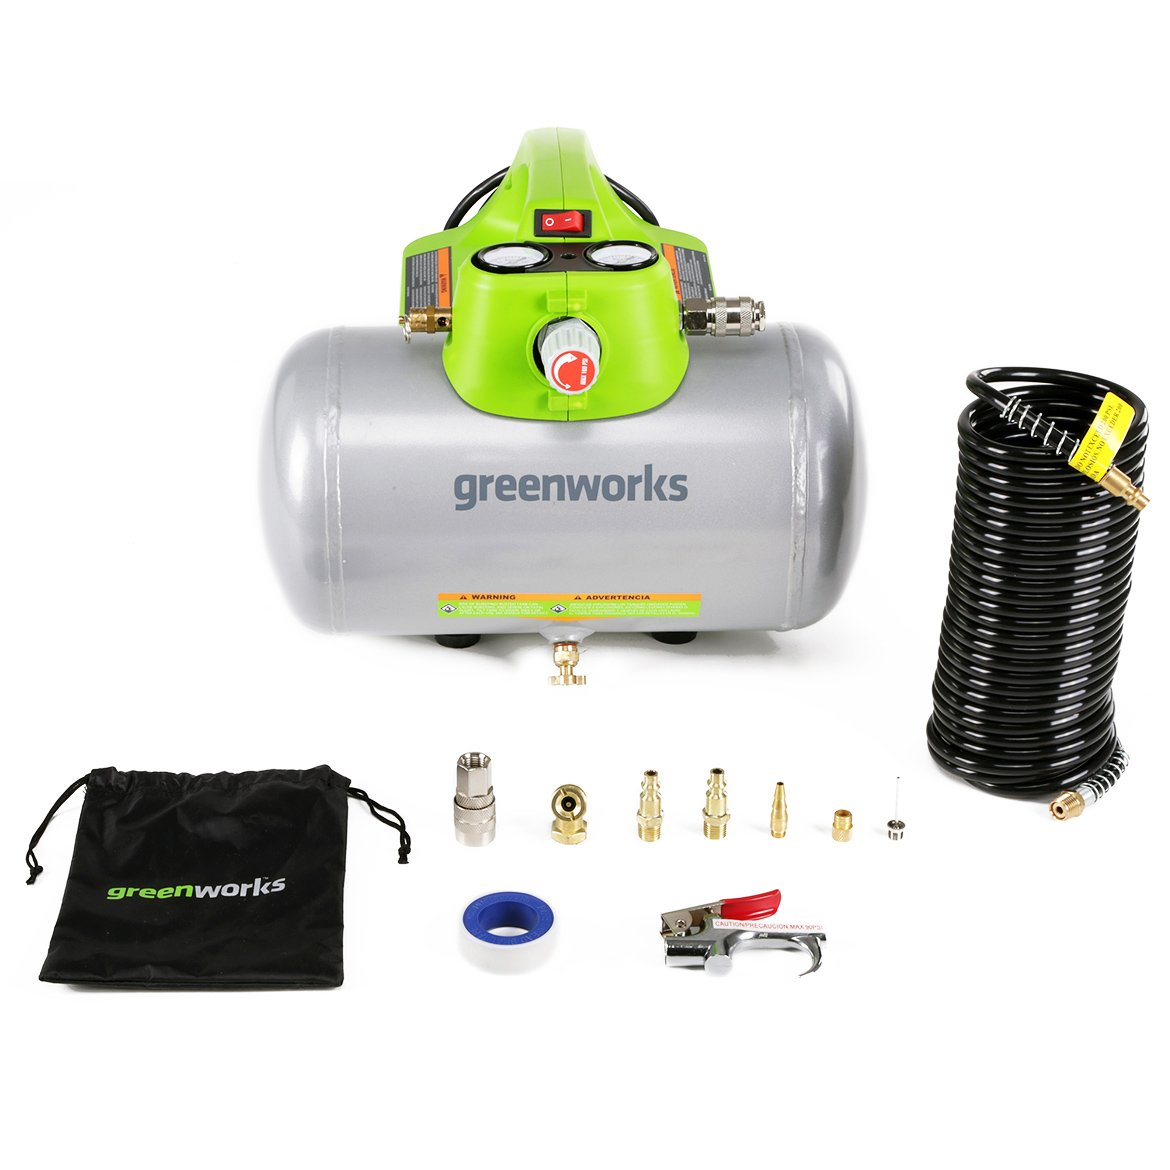 Greenworks 4101902 6 Gallon Horizontal Air Compressor with Induction Motor, w, Green